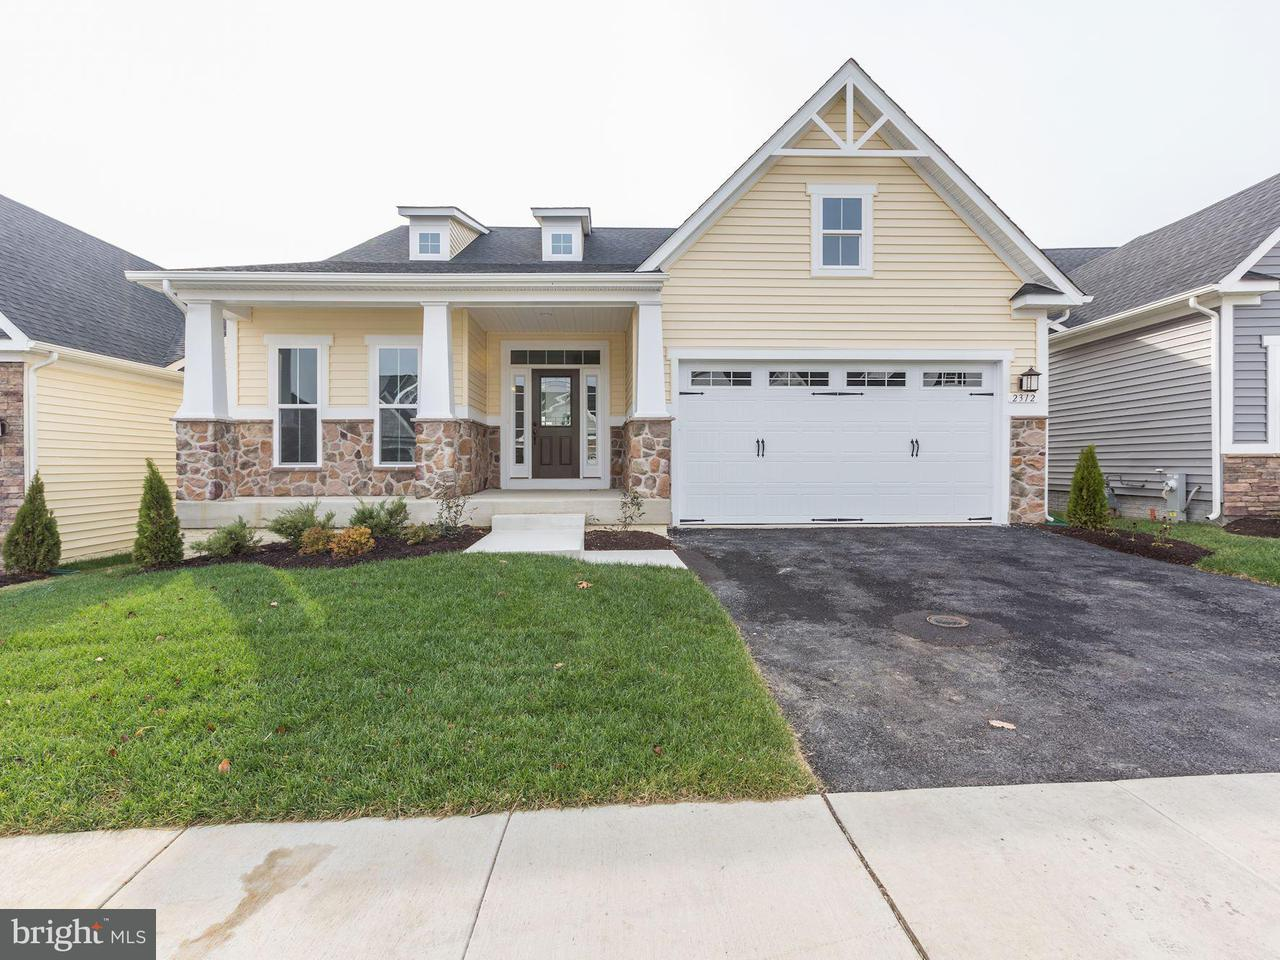 Single Family Home for Sale at 2312 MOURNING DOVE Drive 2312 MOURNING DOVE Drive Odenton, Maryland 21113 United States